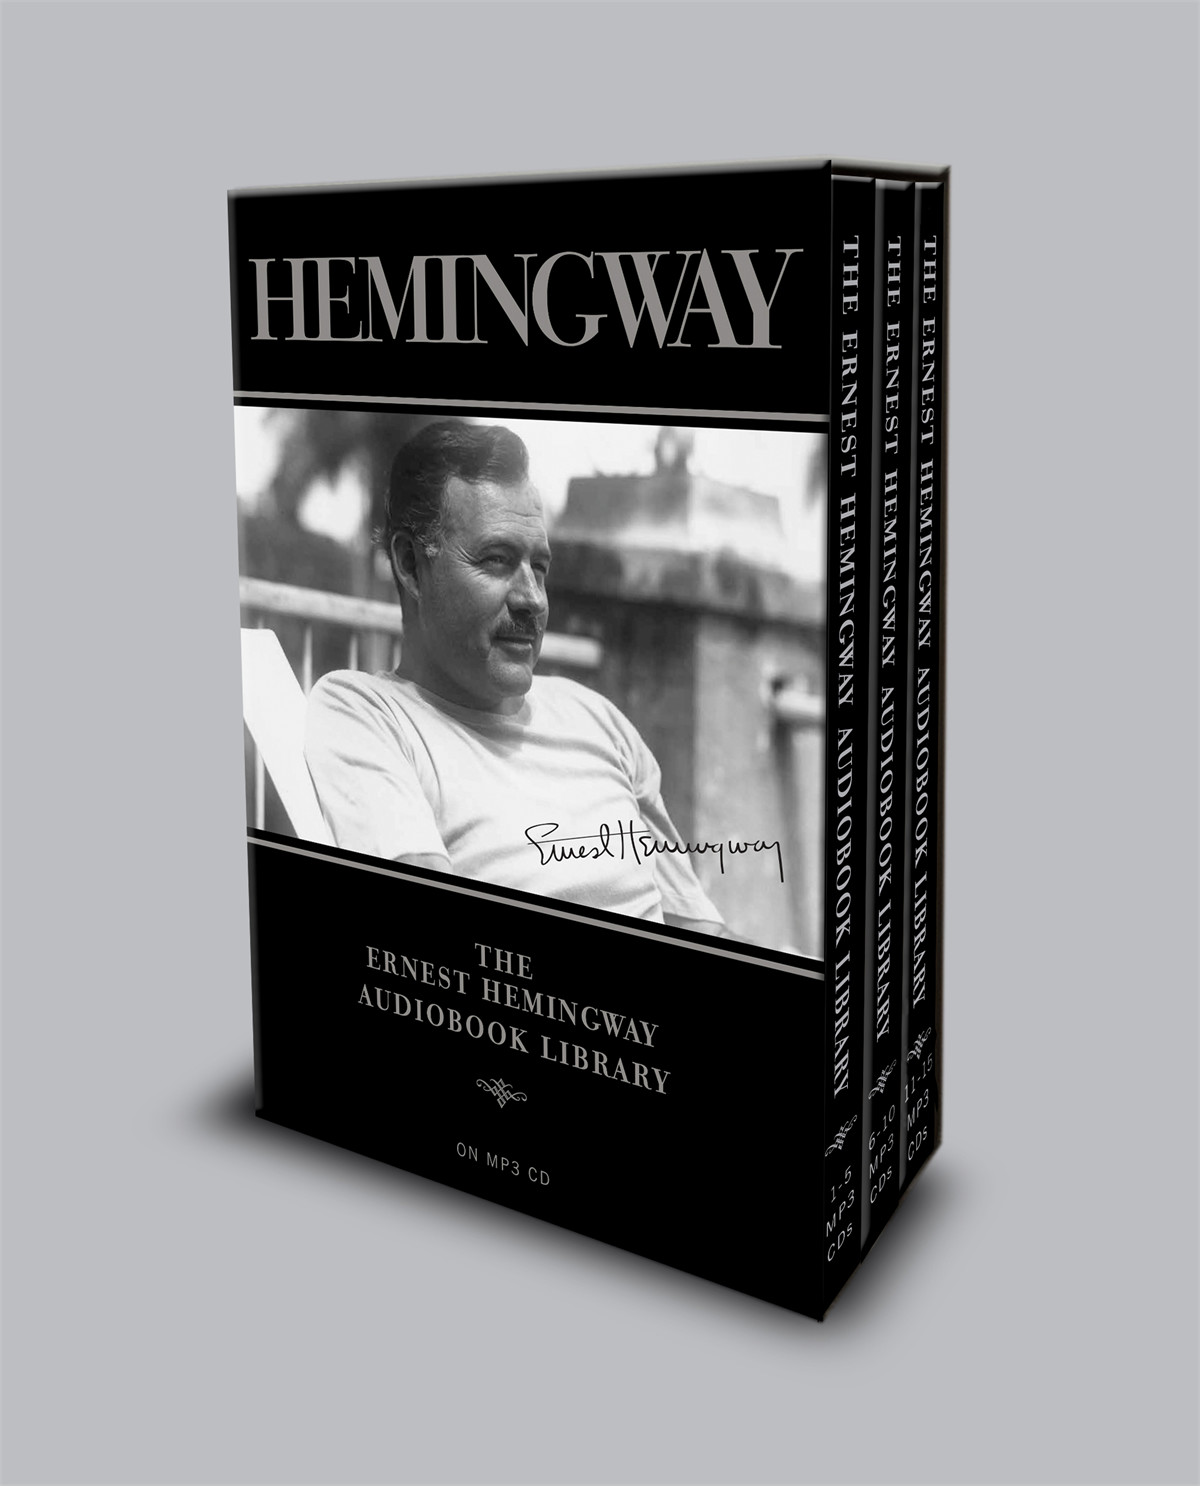 The ernest hemingway audiobook library 9781442359444.in01